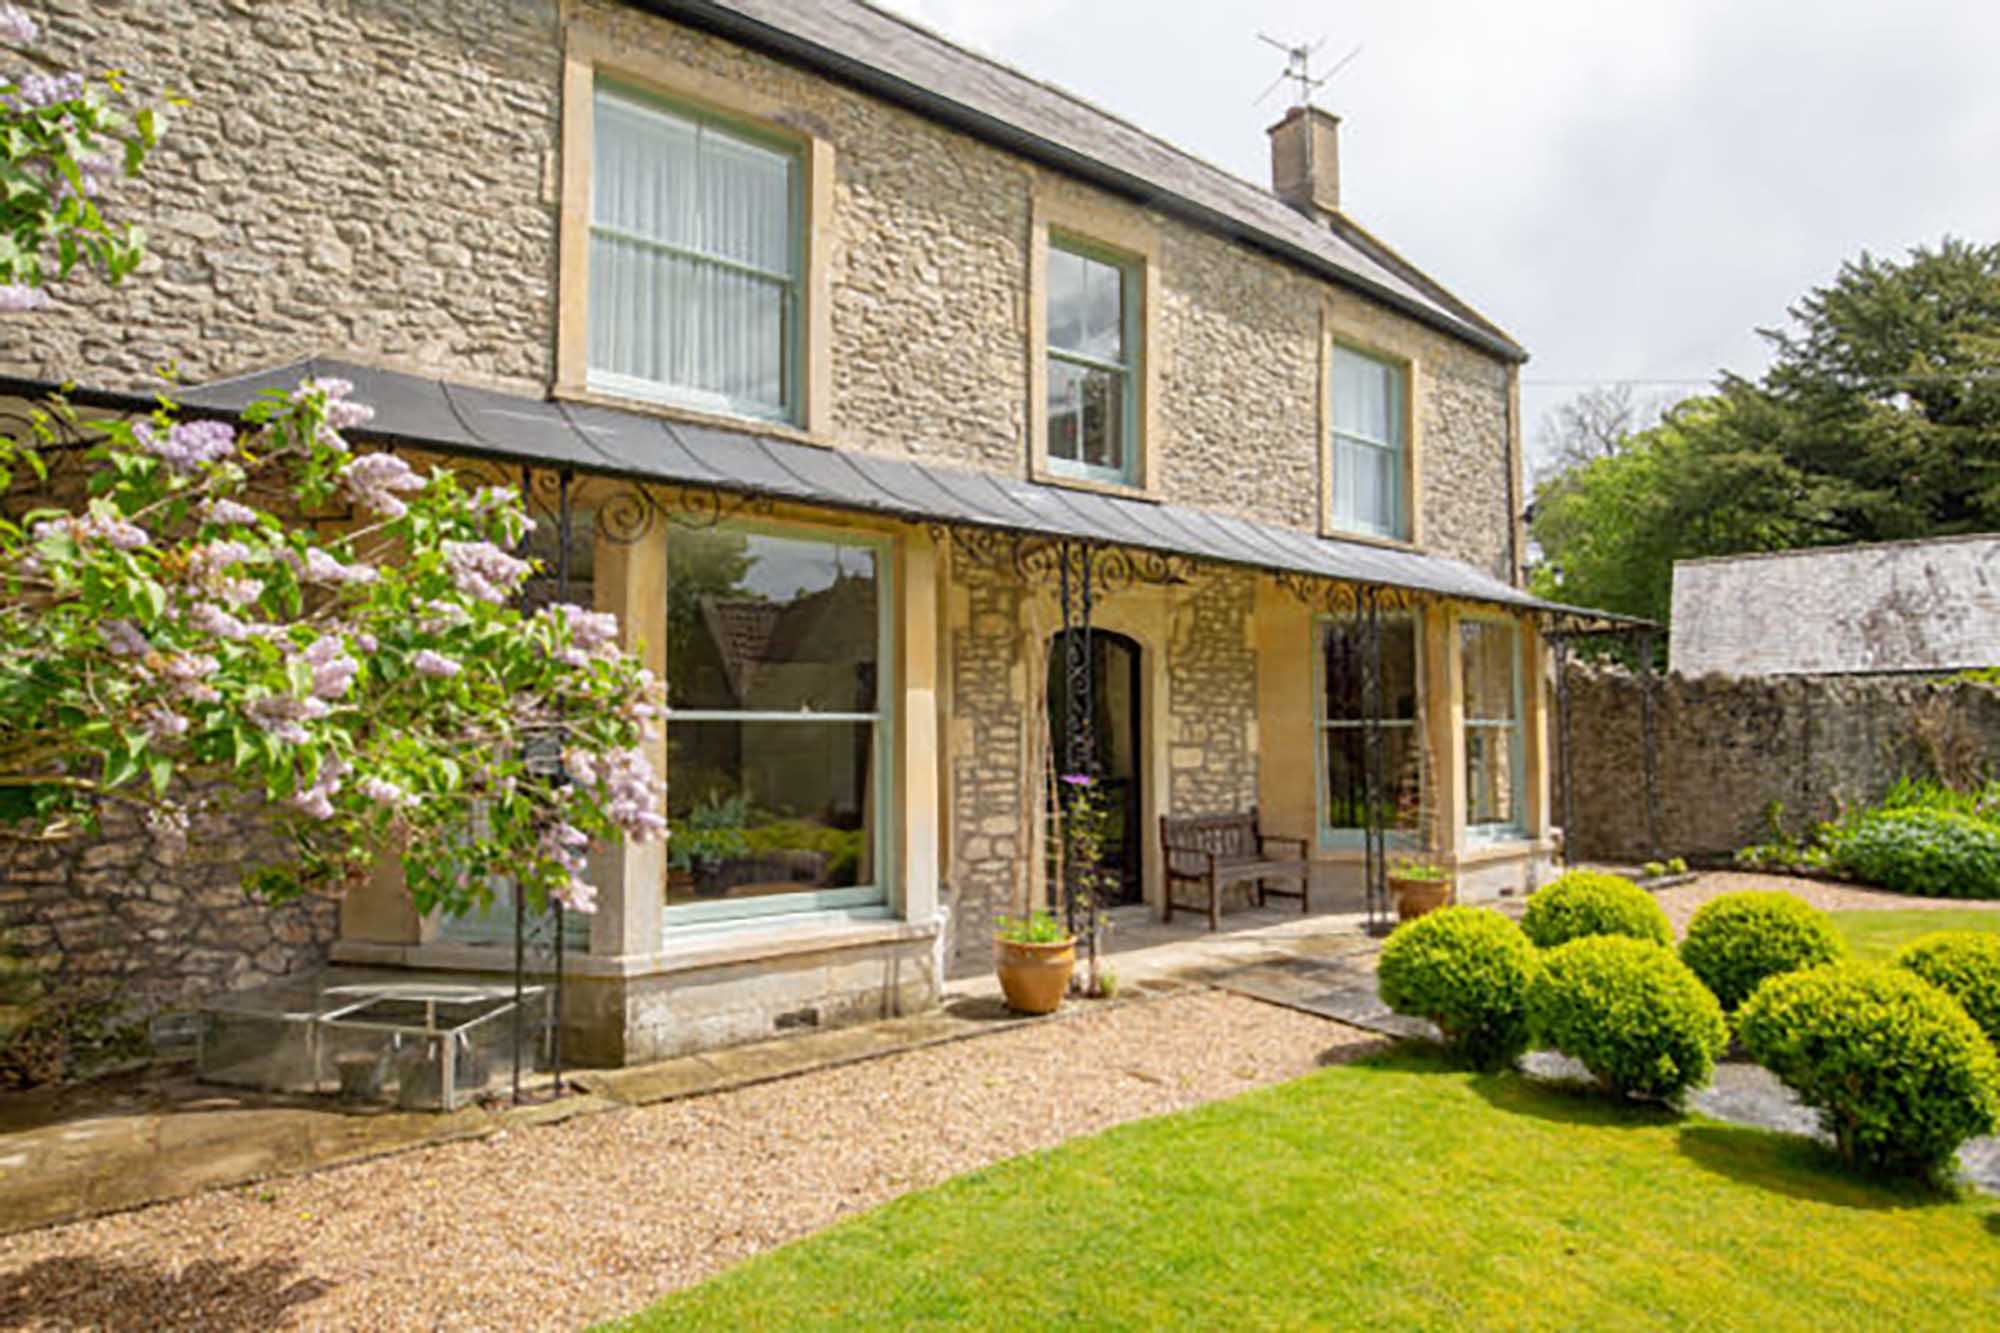 Large period house in tucked away location in town.